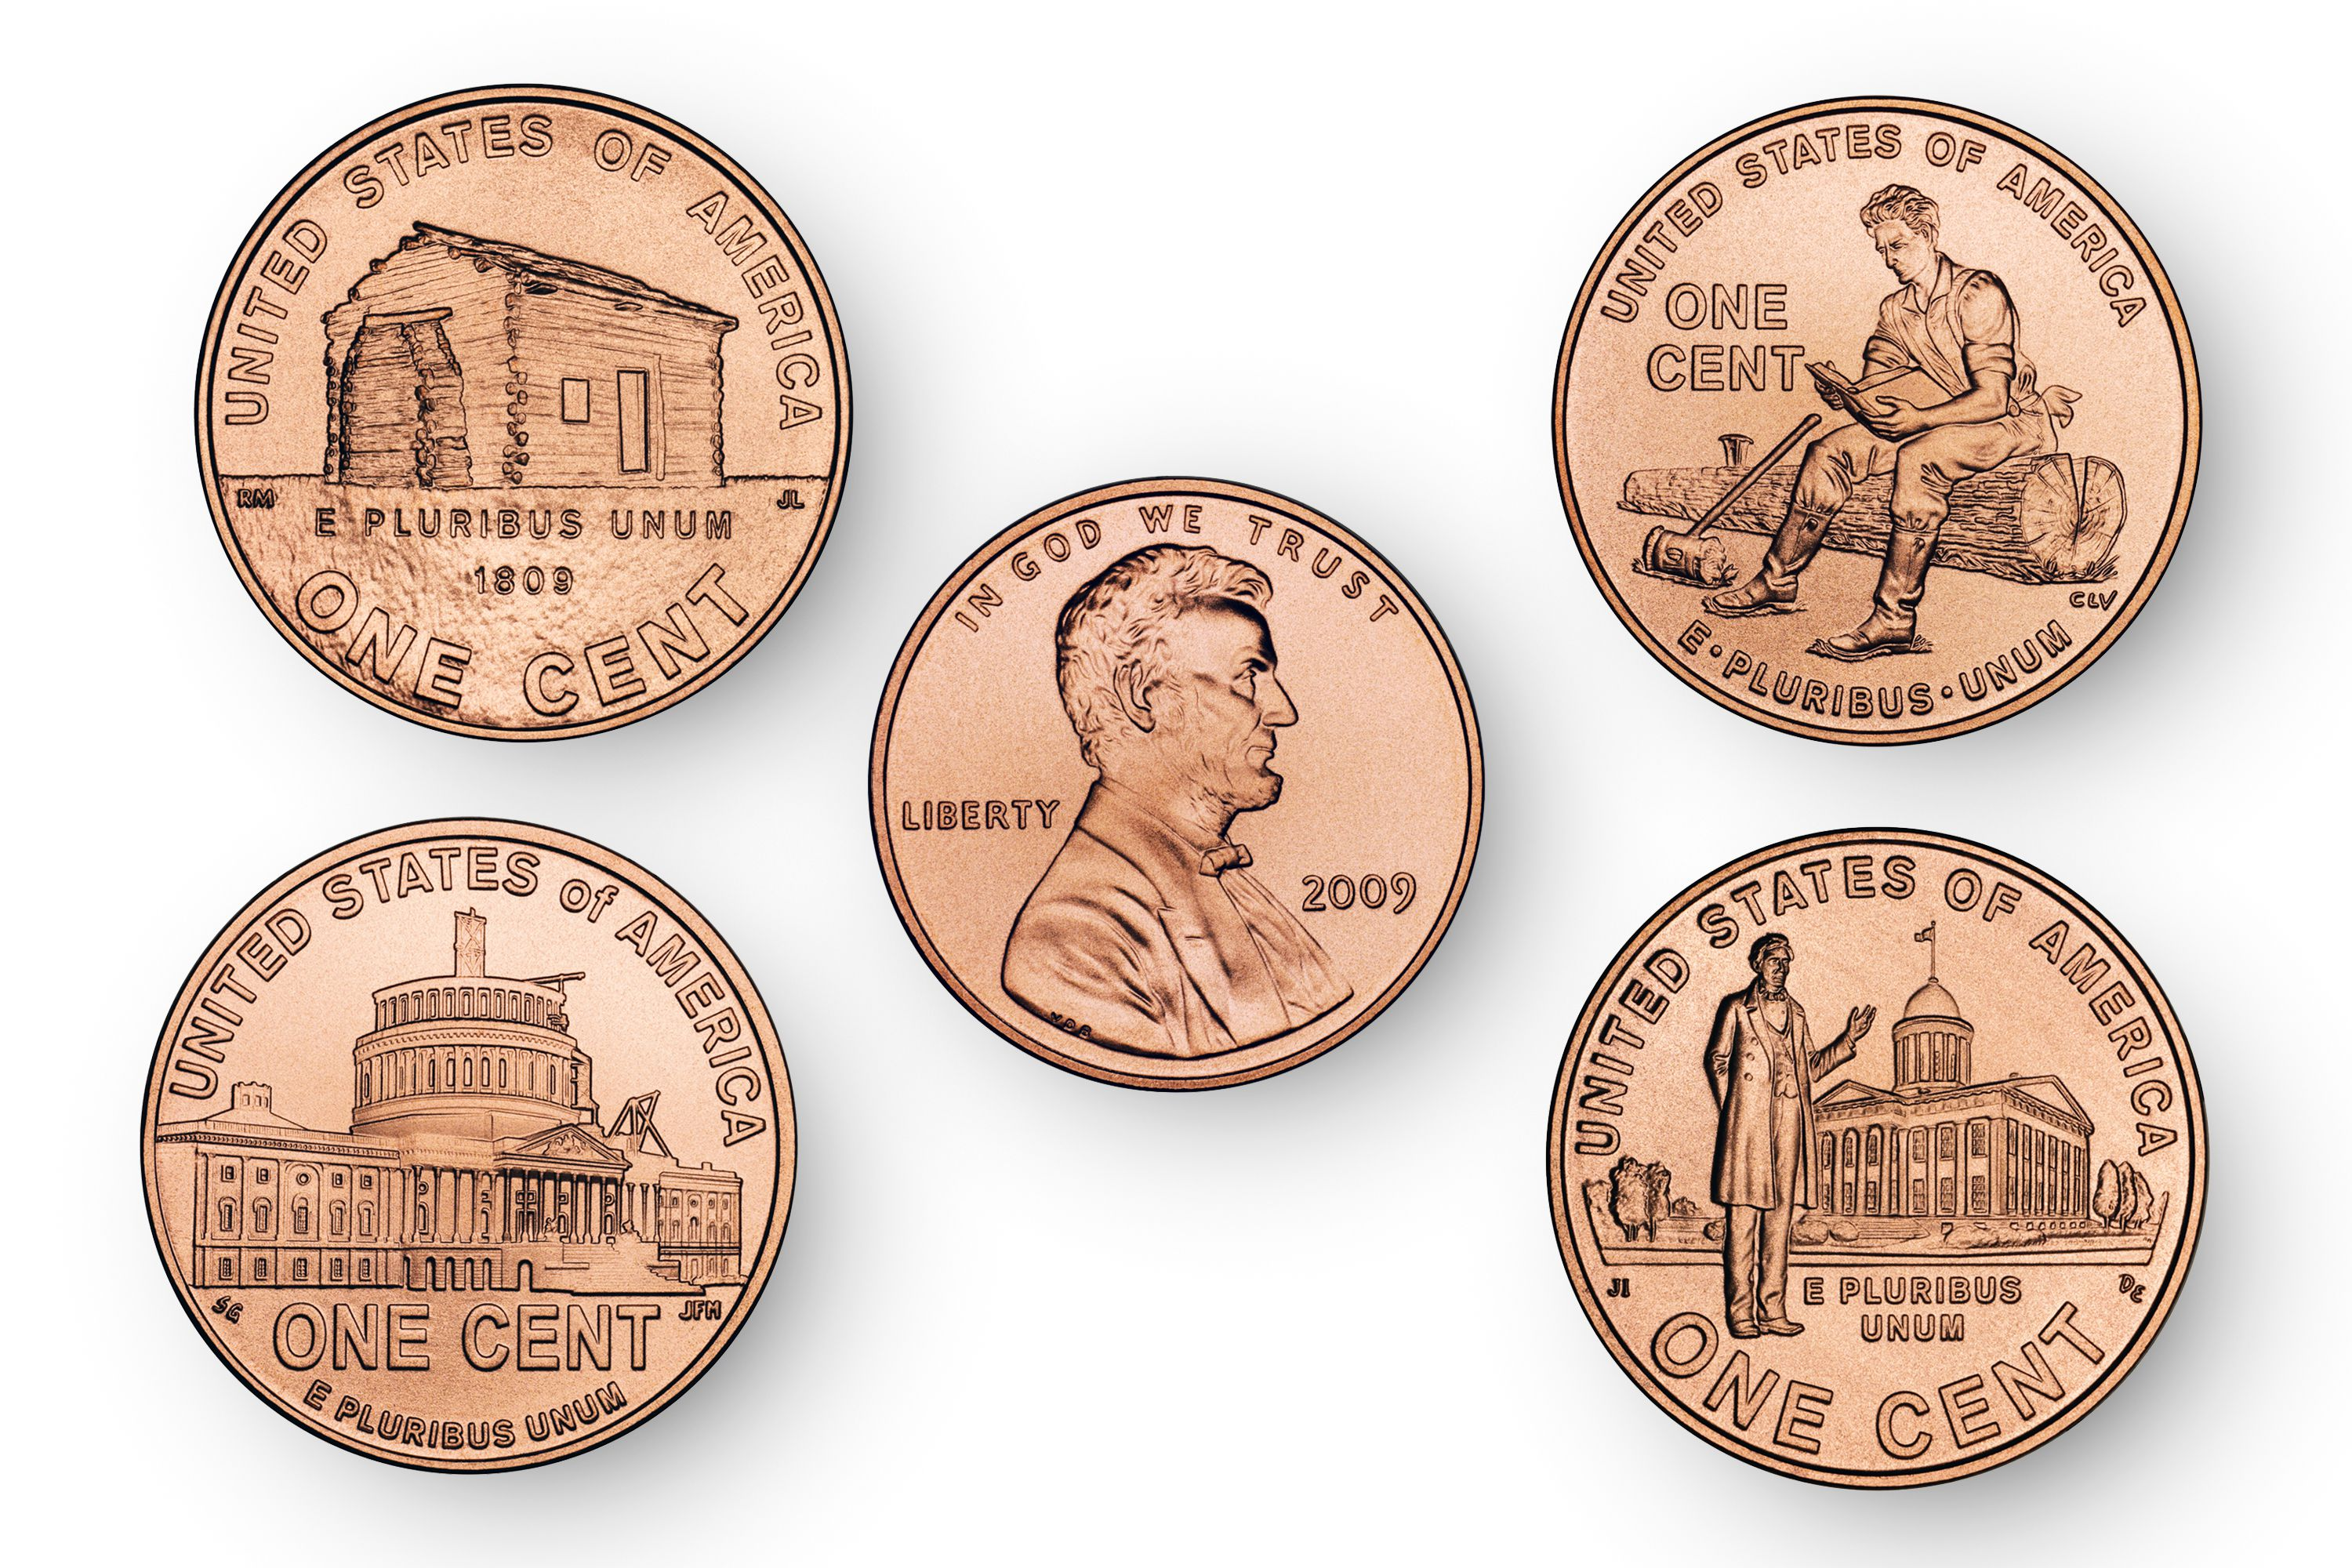 Designs for lincoln pennies in 2009 buycottarizona Gallery